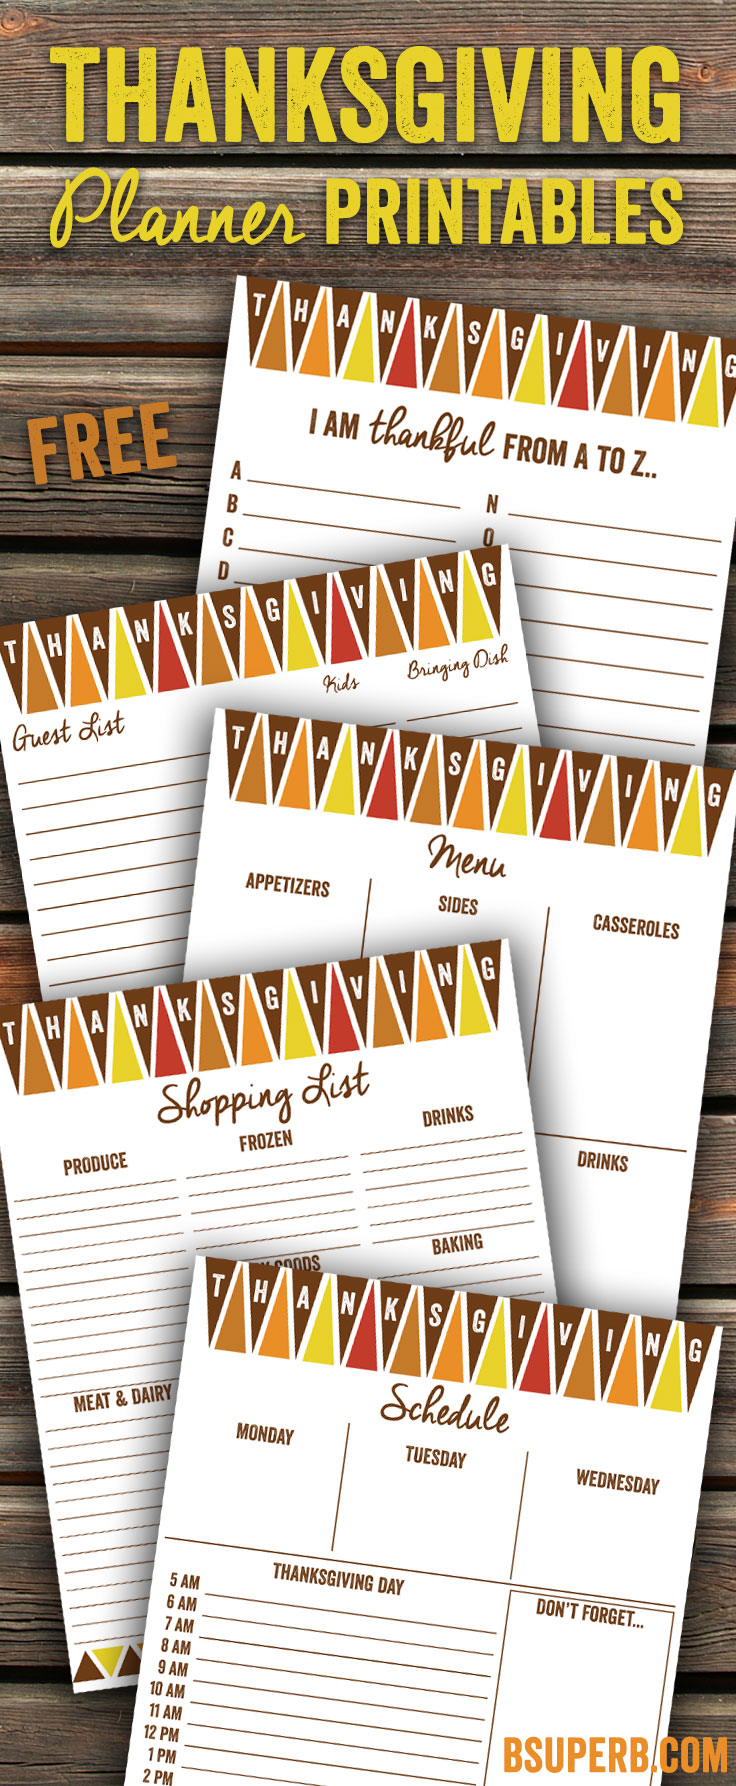 This is a picture of Magic Thanksgiving Planner Printable